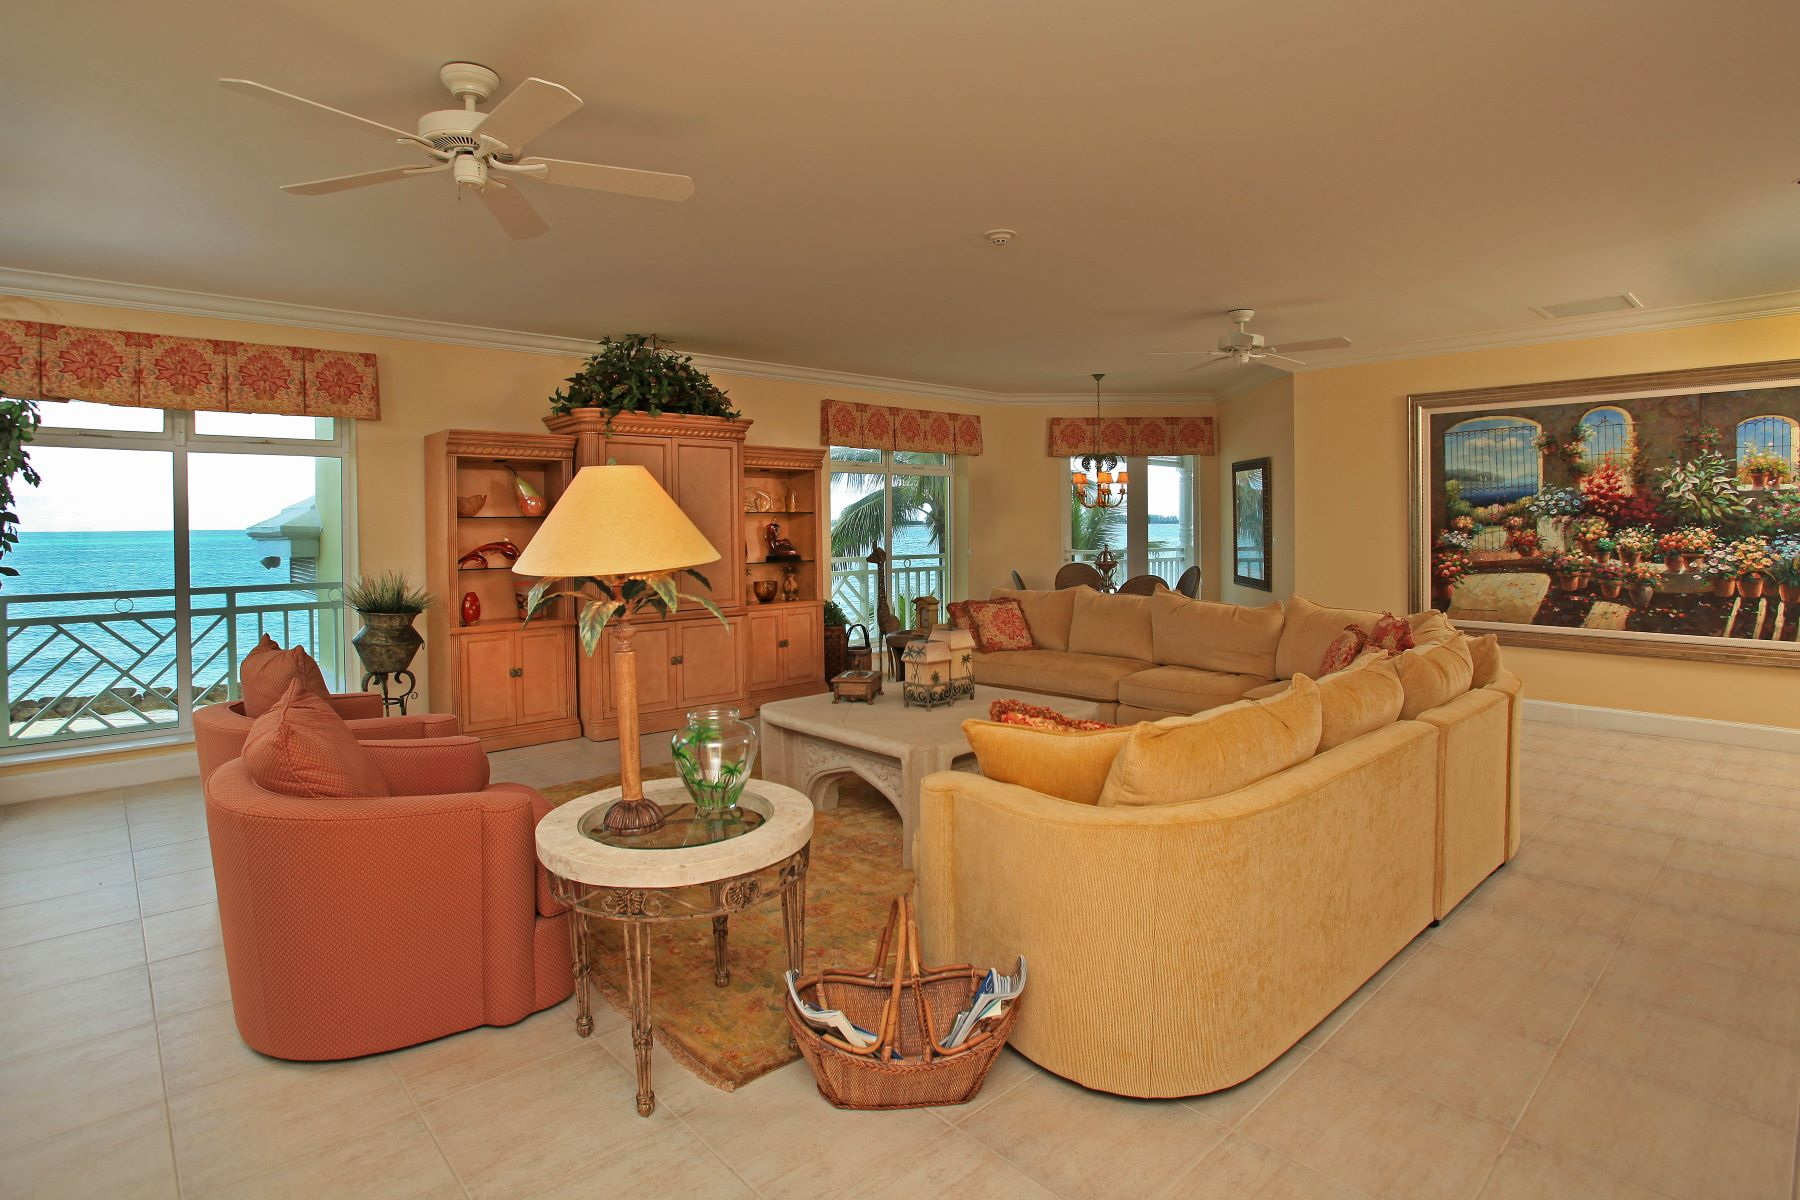 Single Family Home for Sale at Bayroc, West Bay Street Bayroc, Cable Beach, Nassau And Paradise Island Bahamas